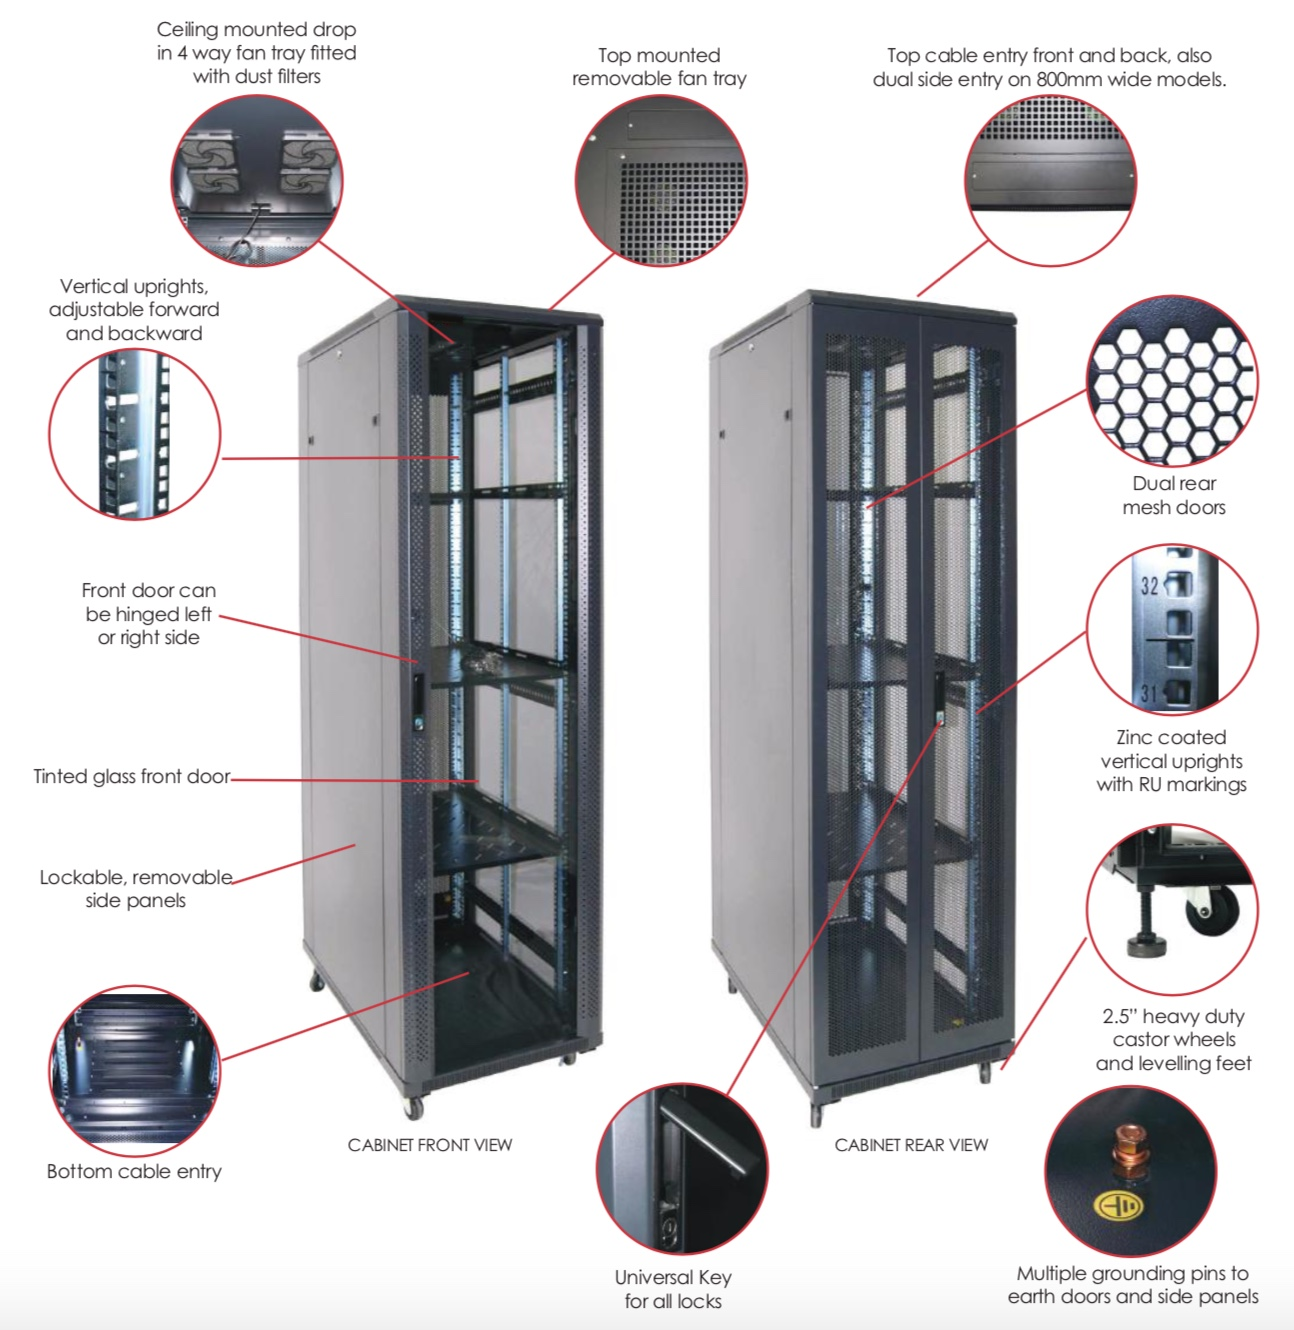 nsr-rack-overview.jpg